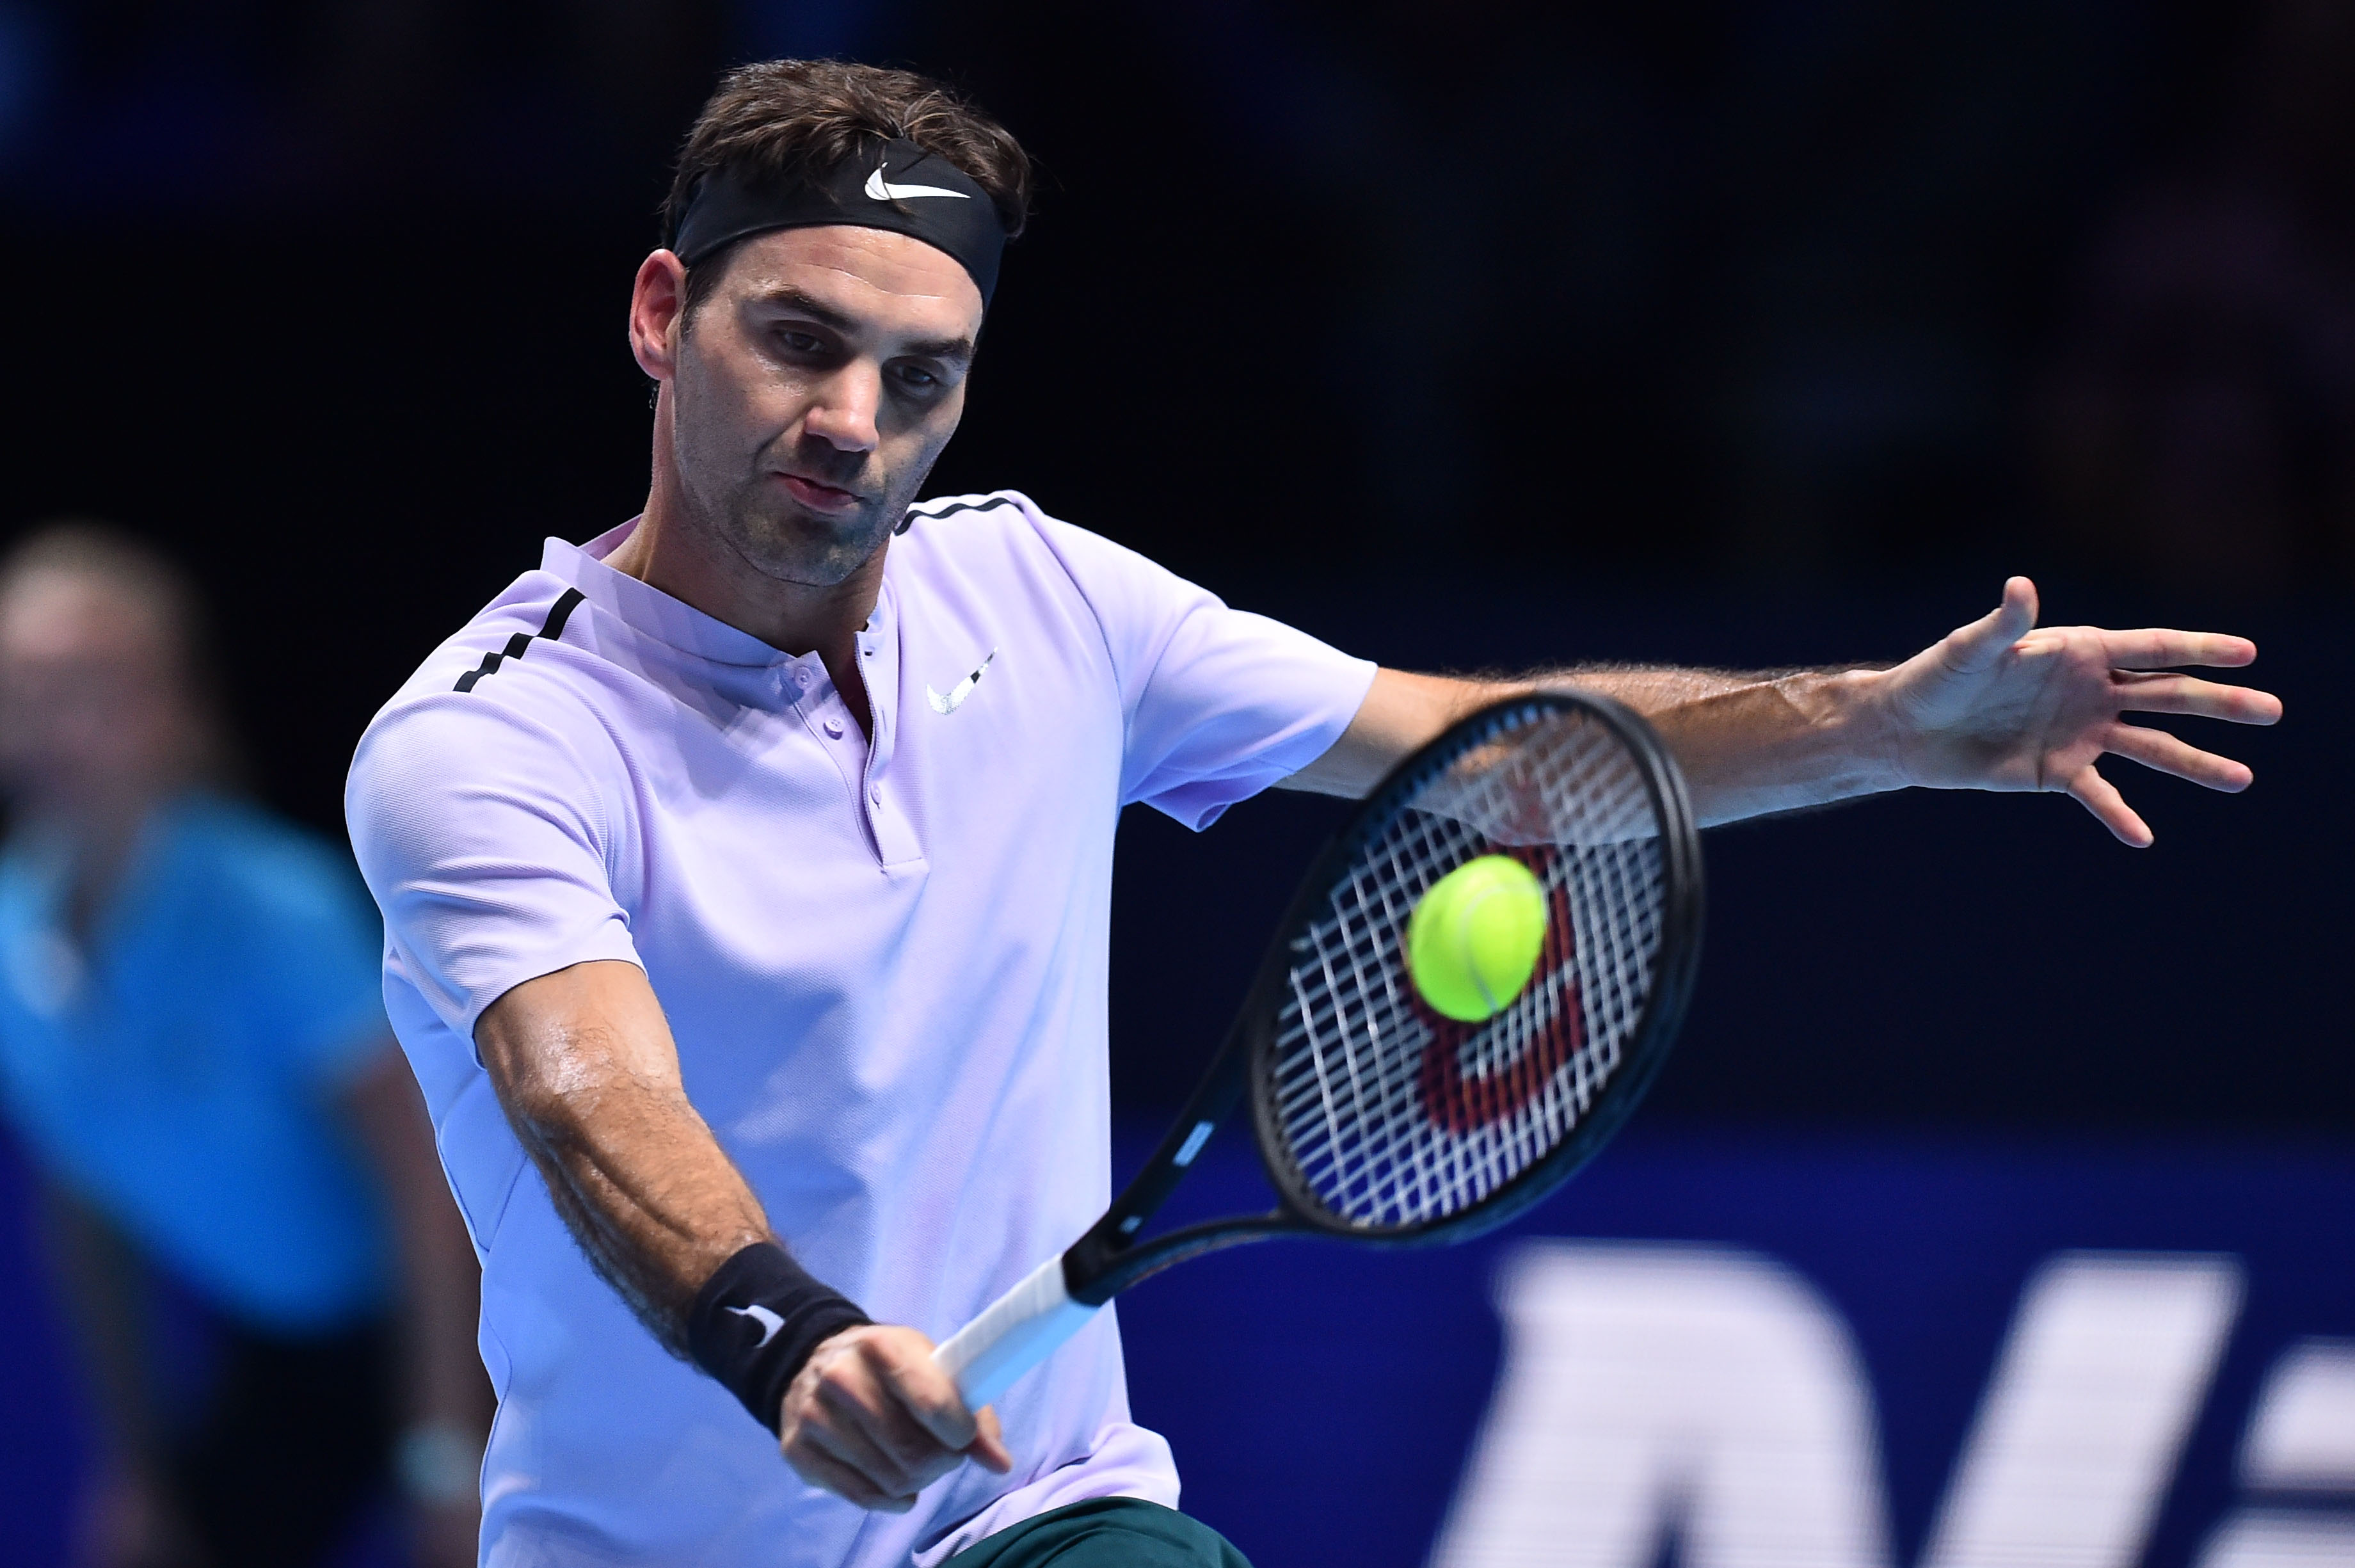 Switzerland's Roger Federer returns against Germany's Alexander Zverev during their men's singles round-robin match on day three of the ATP World Tour Finals tennis tournament at the O2 Arena in London on November 14, 2017. / AFP PHOTO / Glyn KIRK        (Photo credit should read GLYN KIRK/AFP/Getty Images)